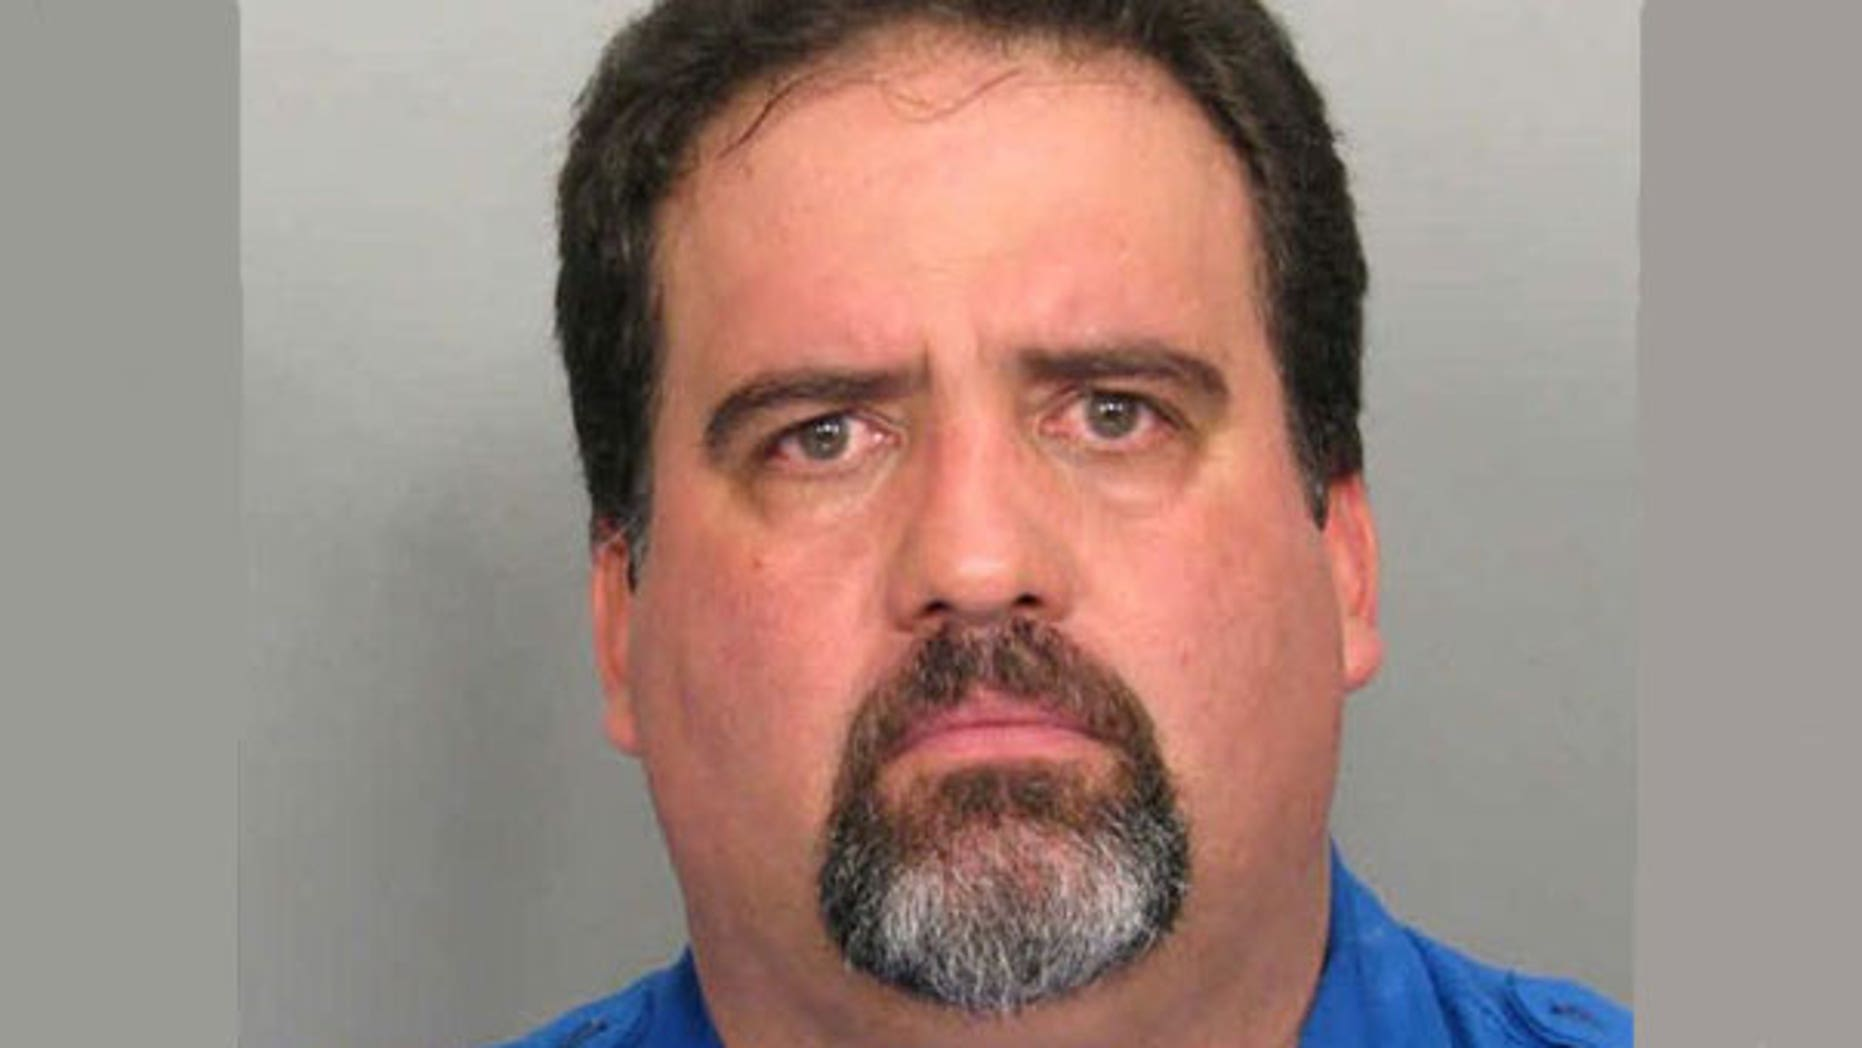 May 5: TSA agent Rolando Negrin was arrested for allegedly attacking a colleague who mocked the size of his penis.